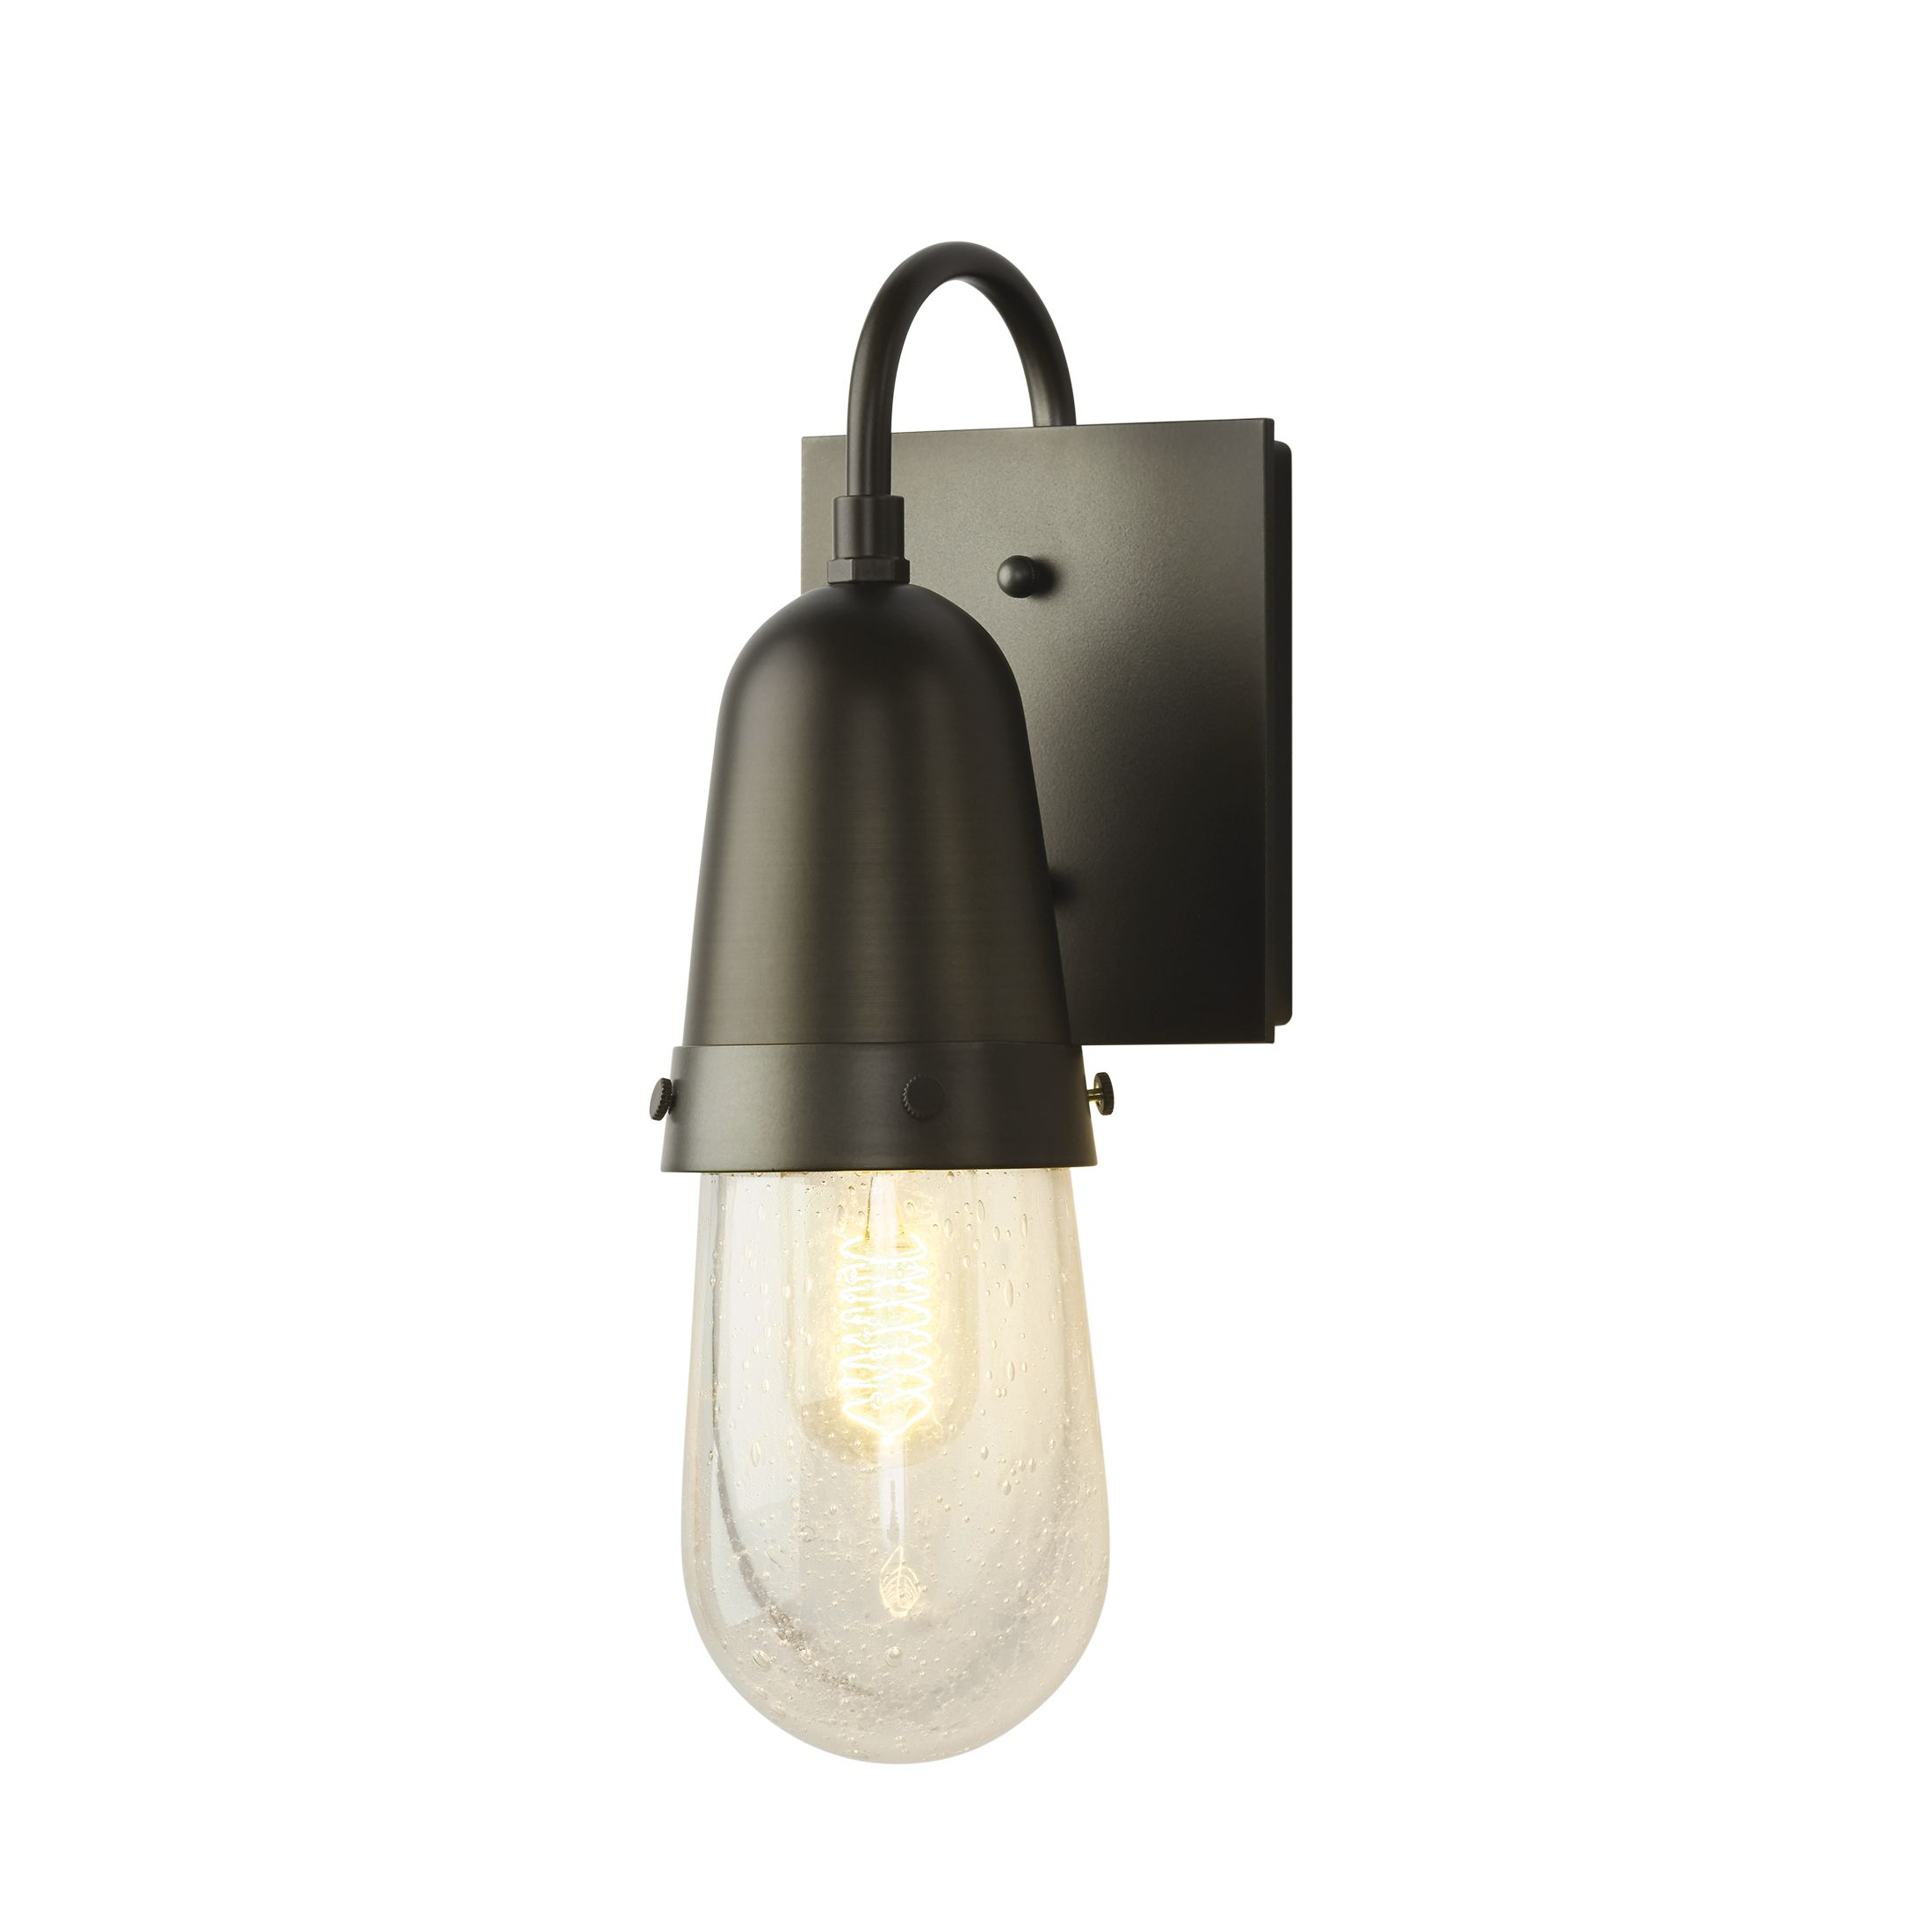 302750 fizz outdoor sconce - Outdoor Sconce Lighting